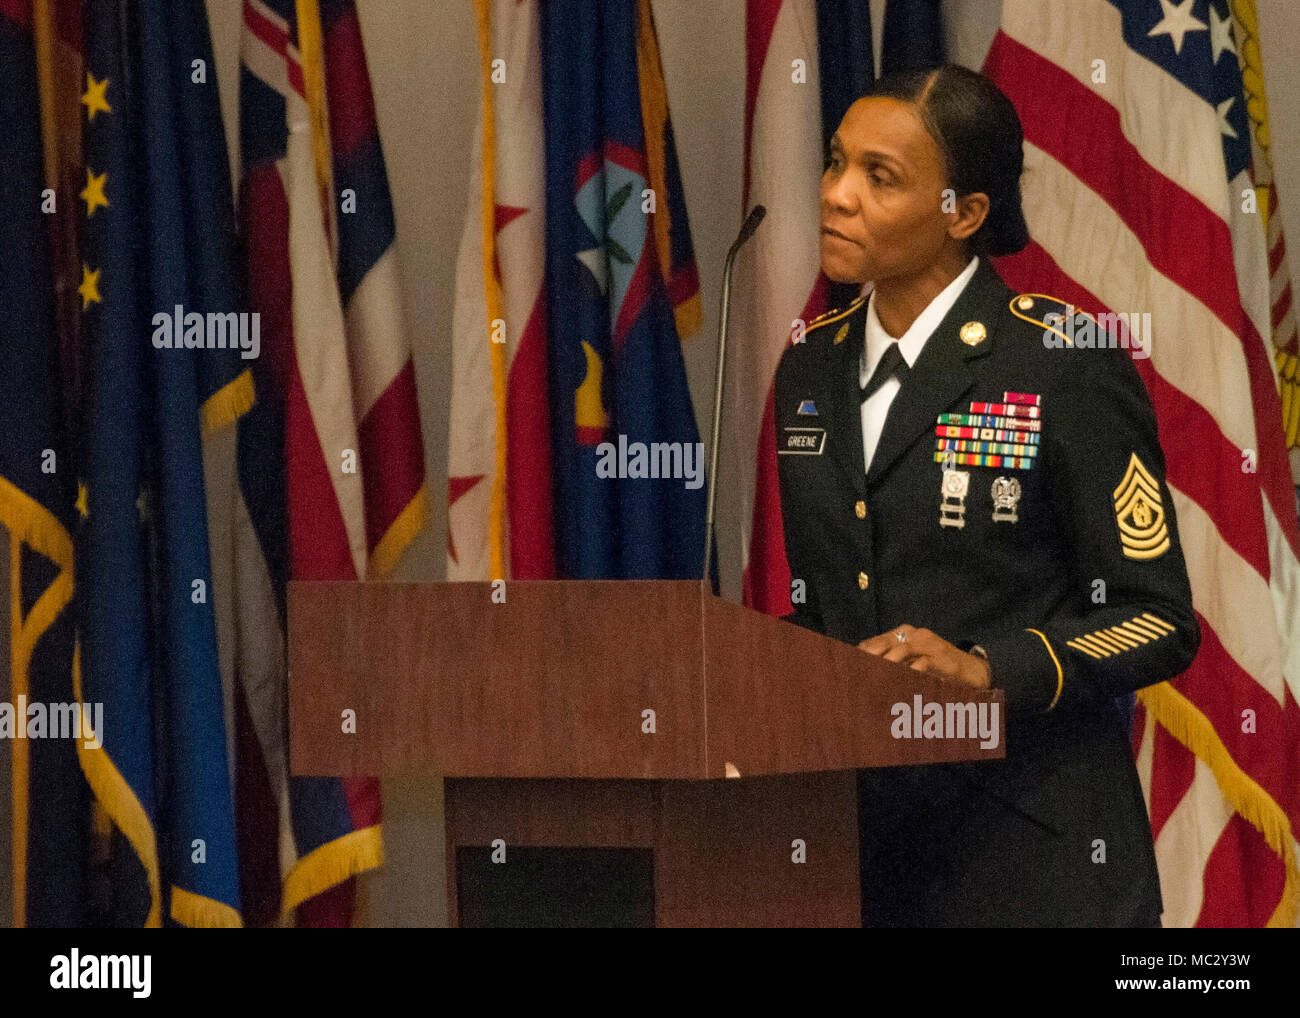 Fort Bliss Command Sergeant Major Stock Photos & Fort ...